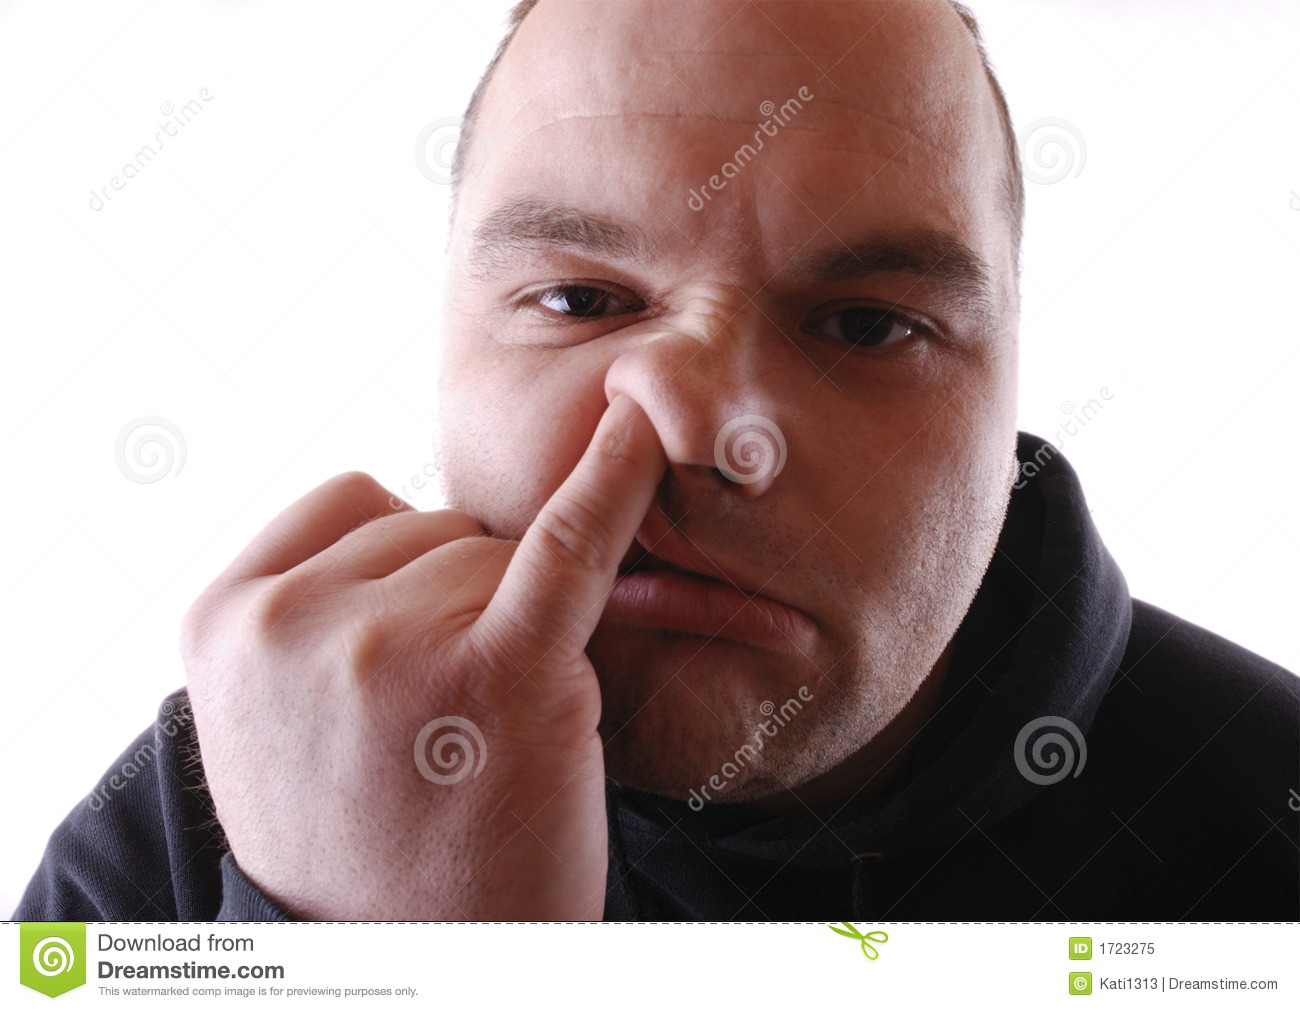 Picking Nose Royalty Free Stock Photo - Image: 1723275